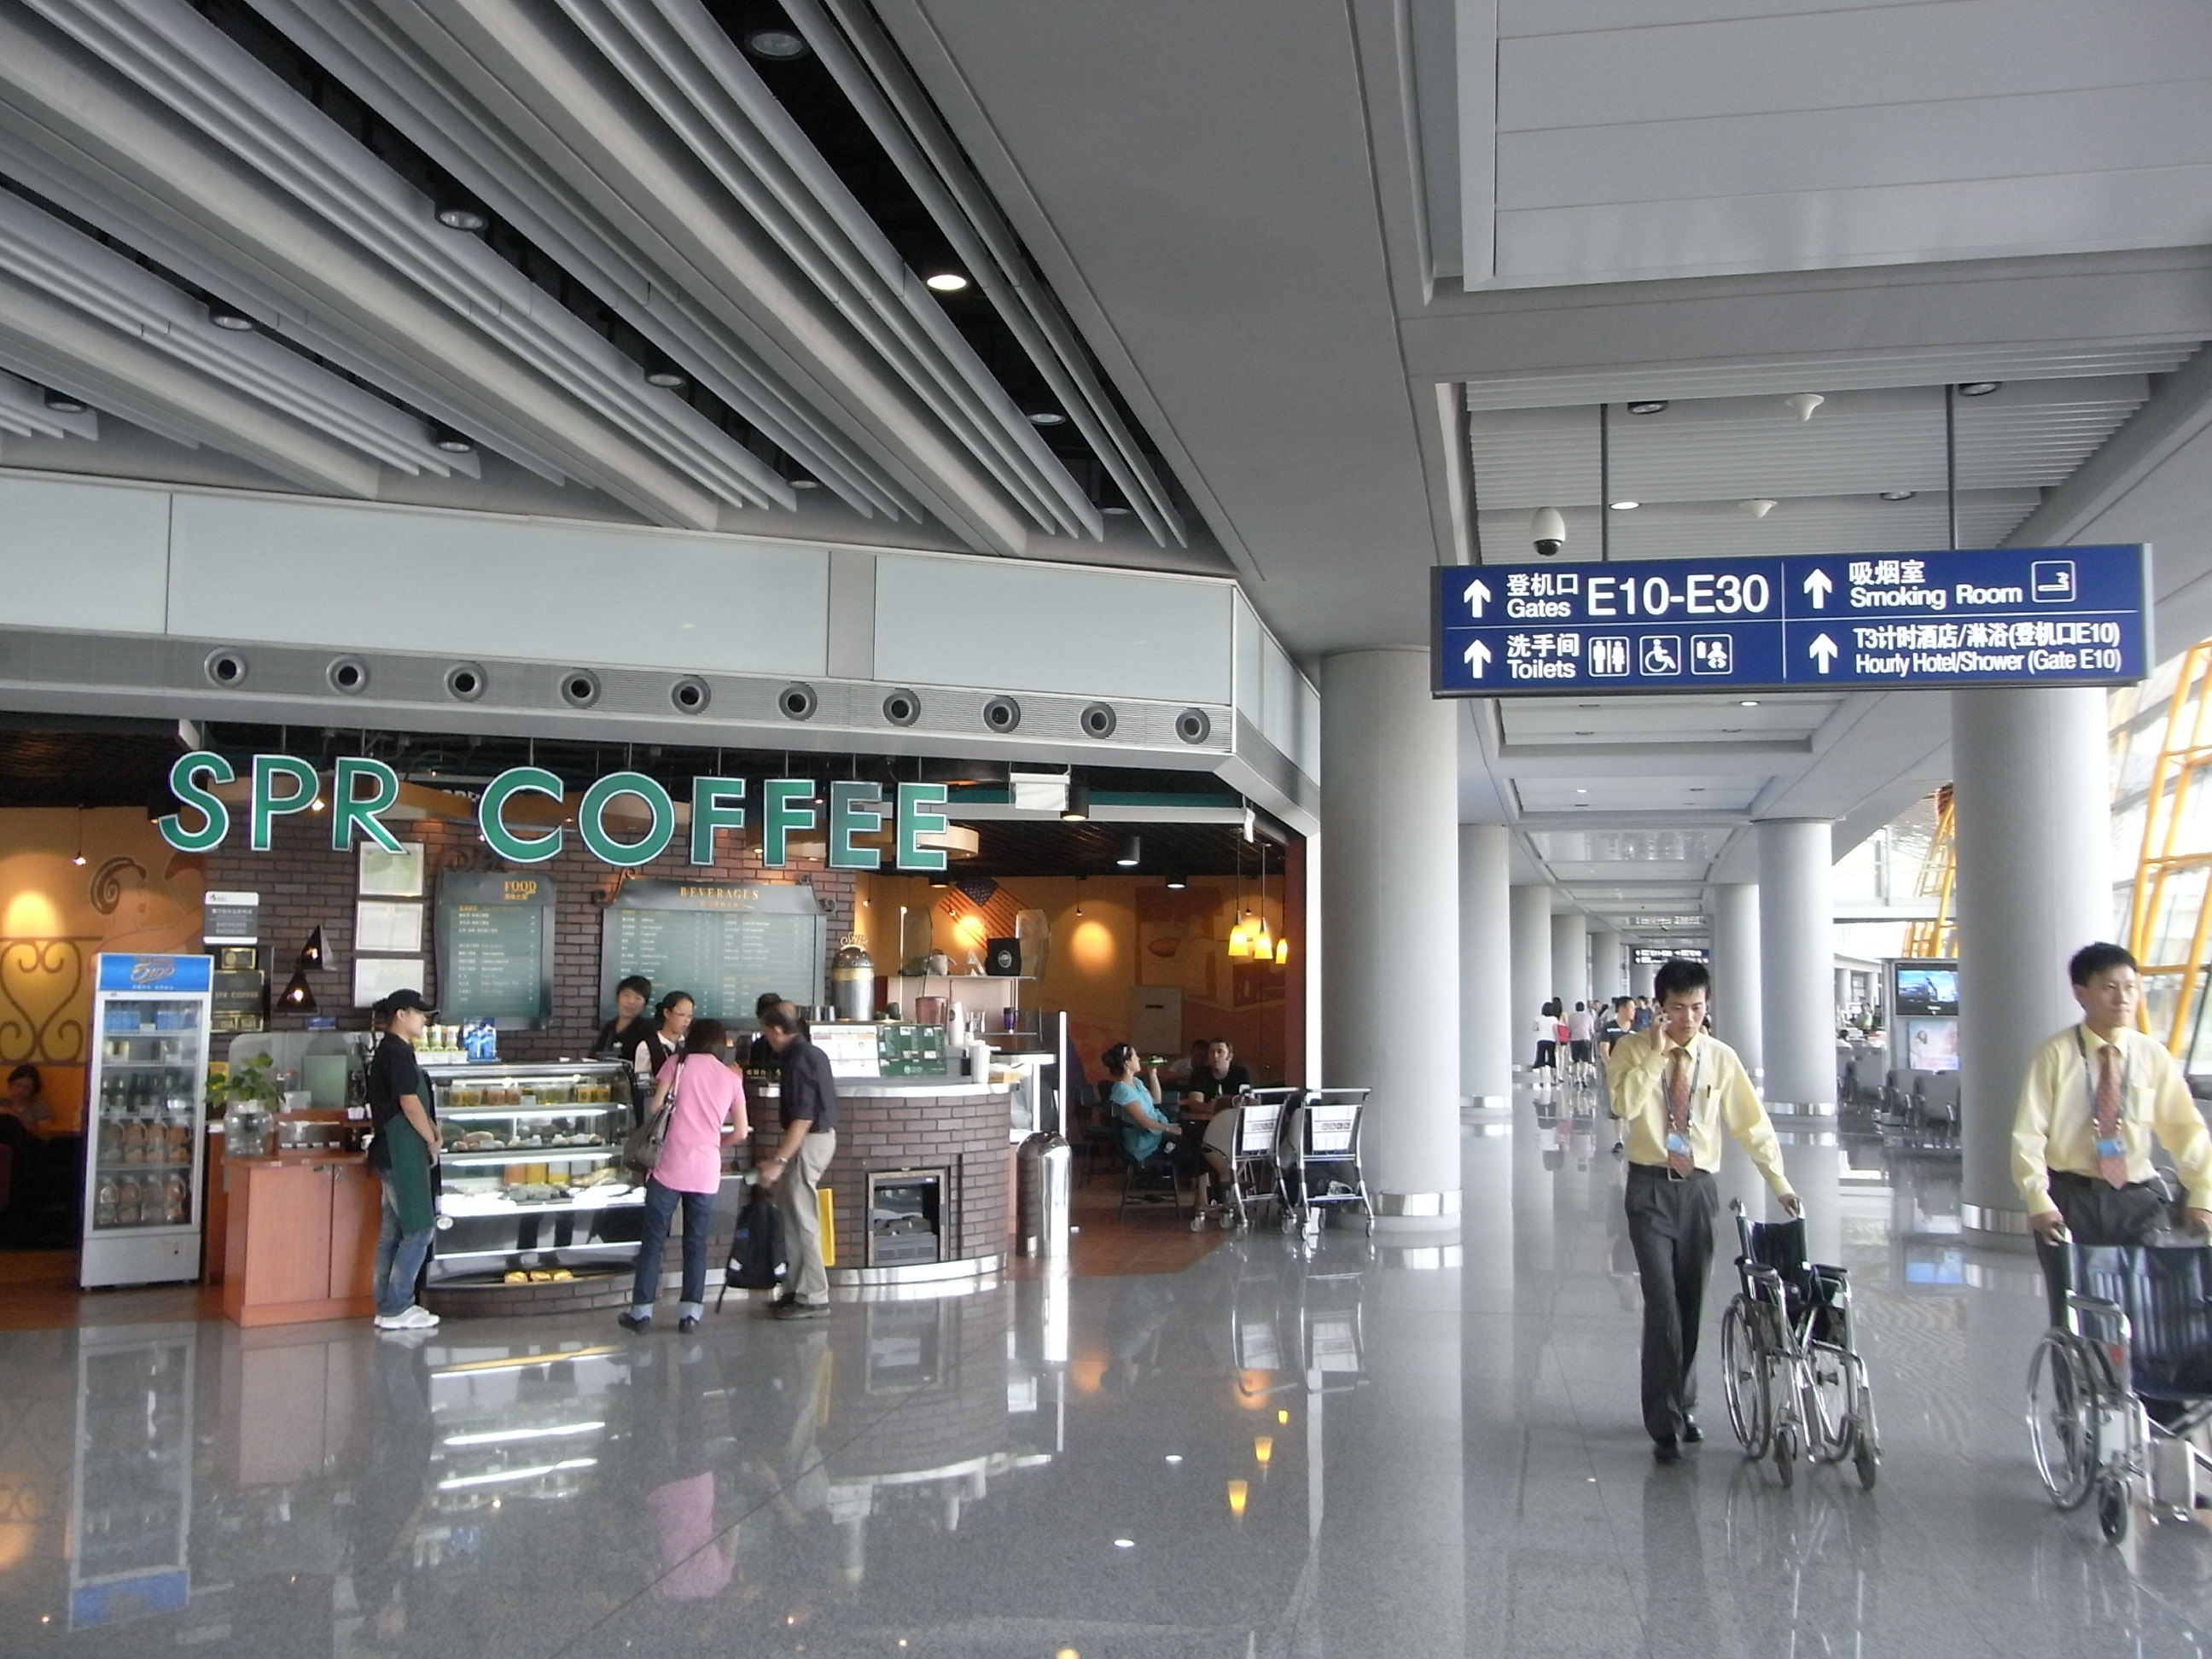 Beijing Airport Shopping Airport Bcia Shop Spr